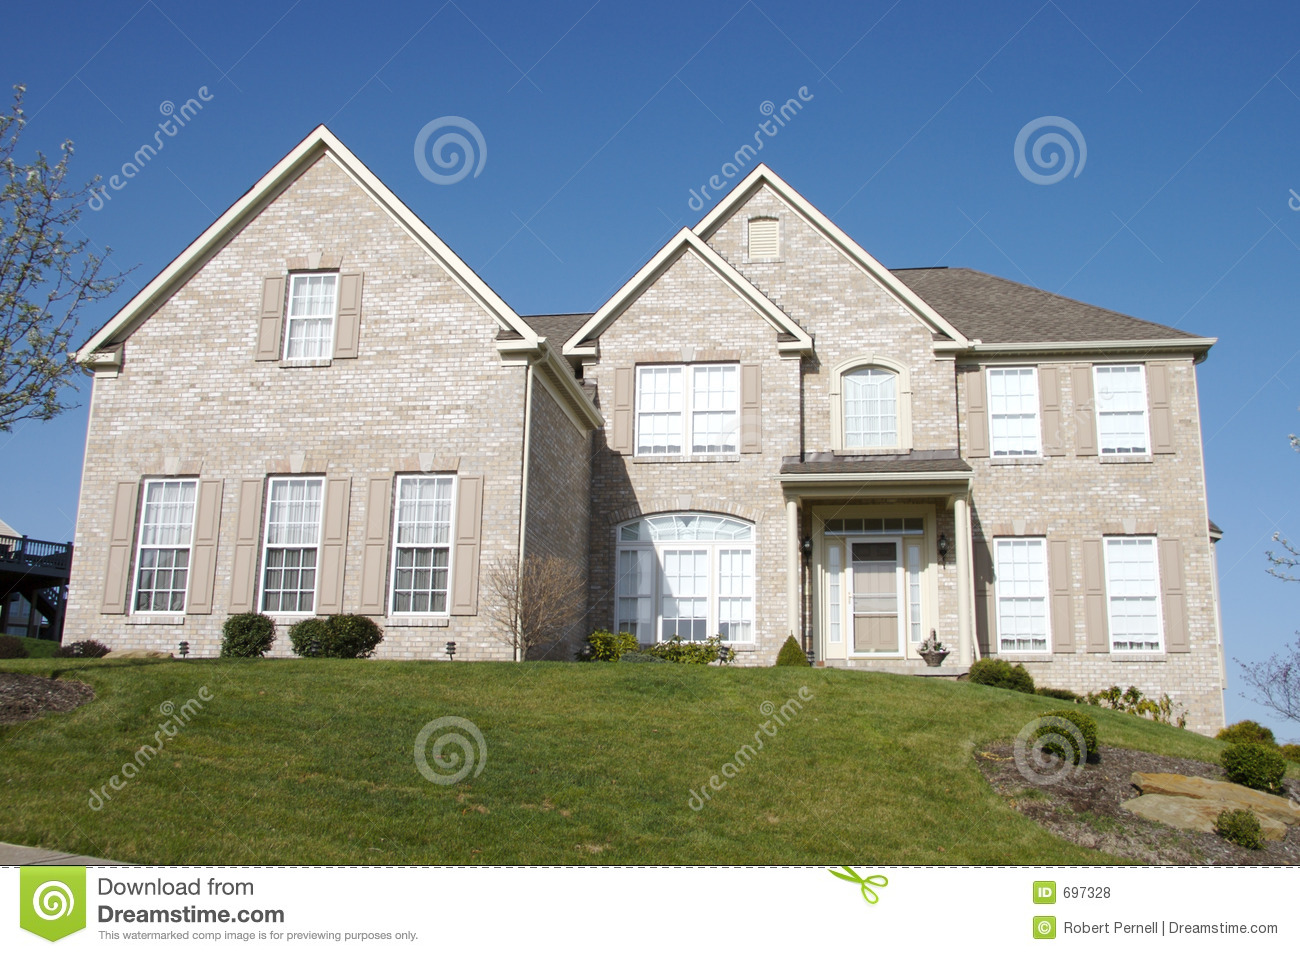 Luxury home royalty free stock photos image 697328 for Free luxury home images